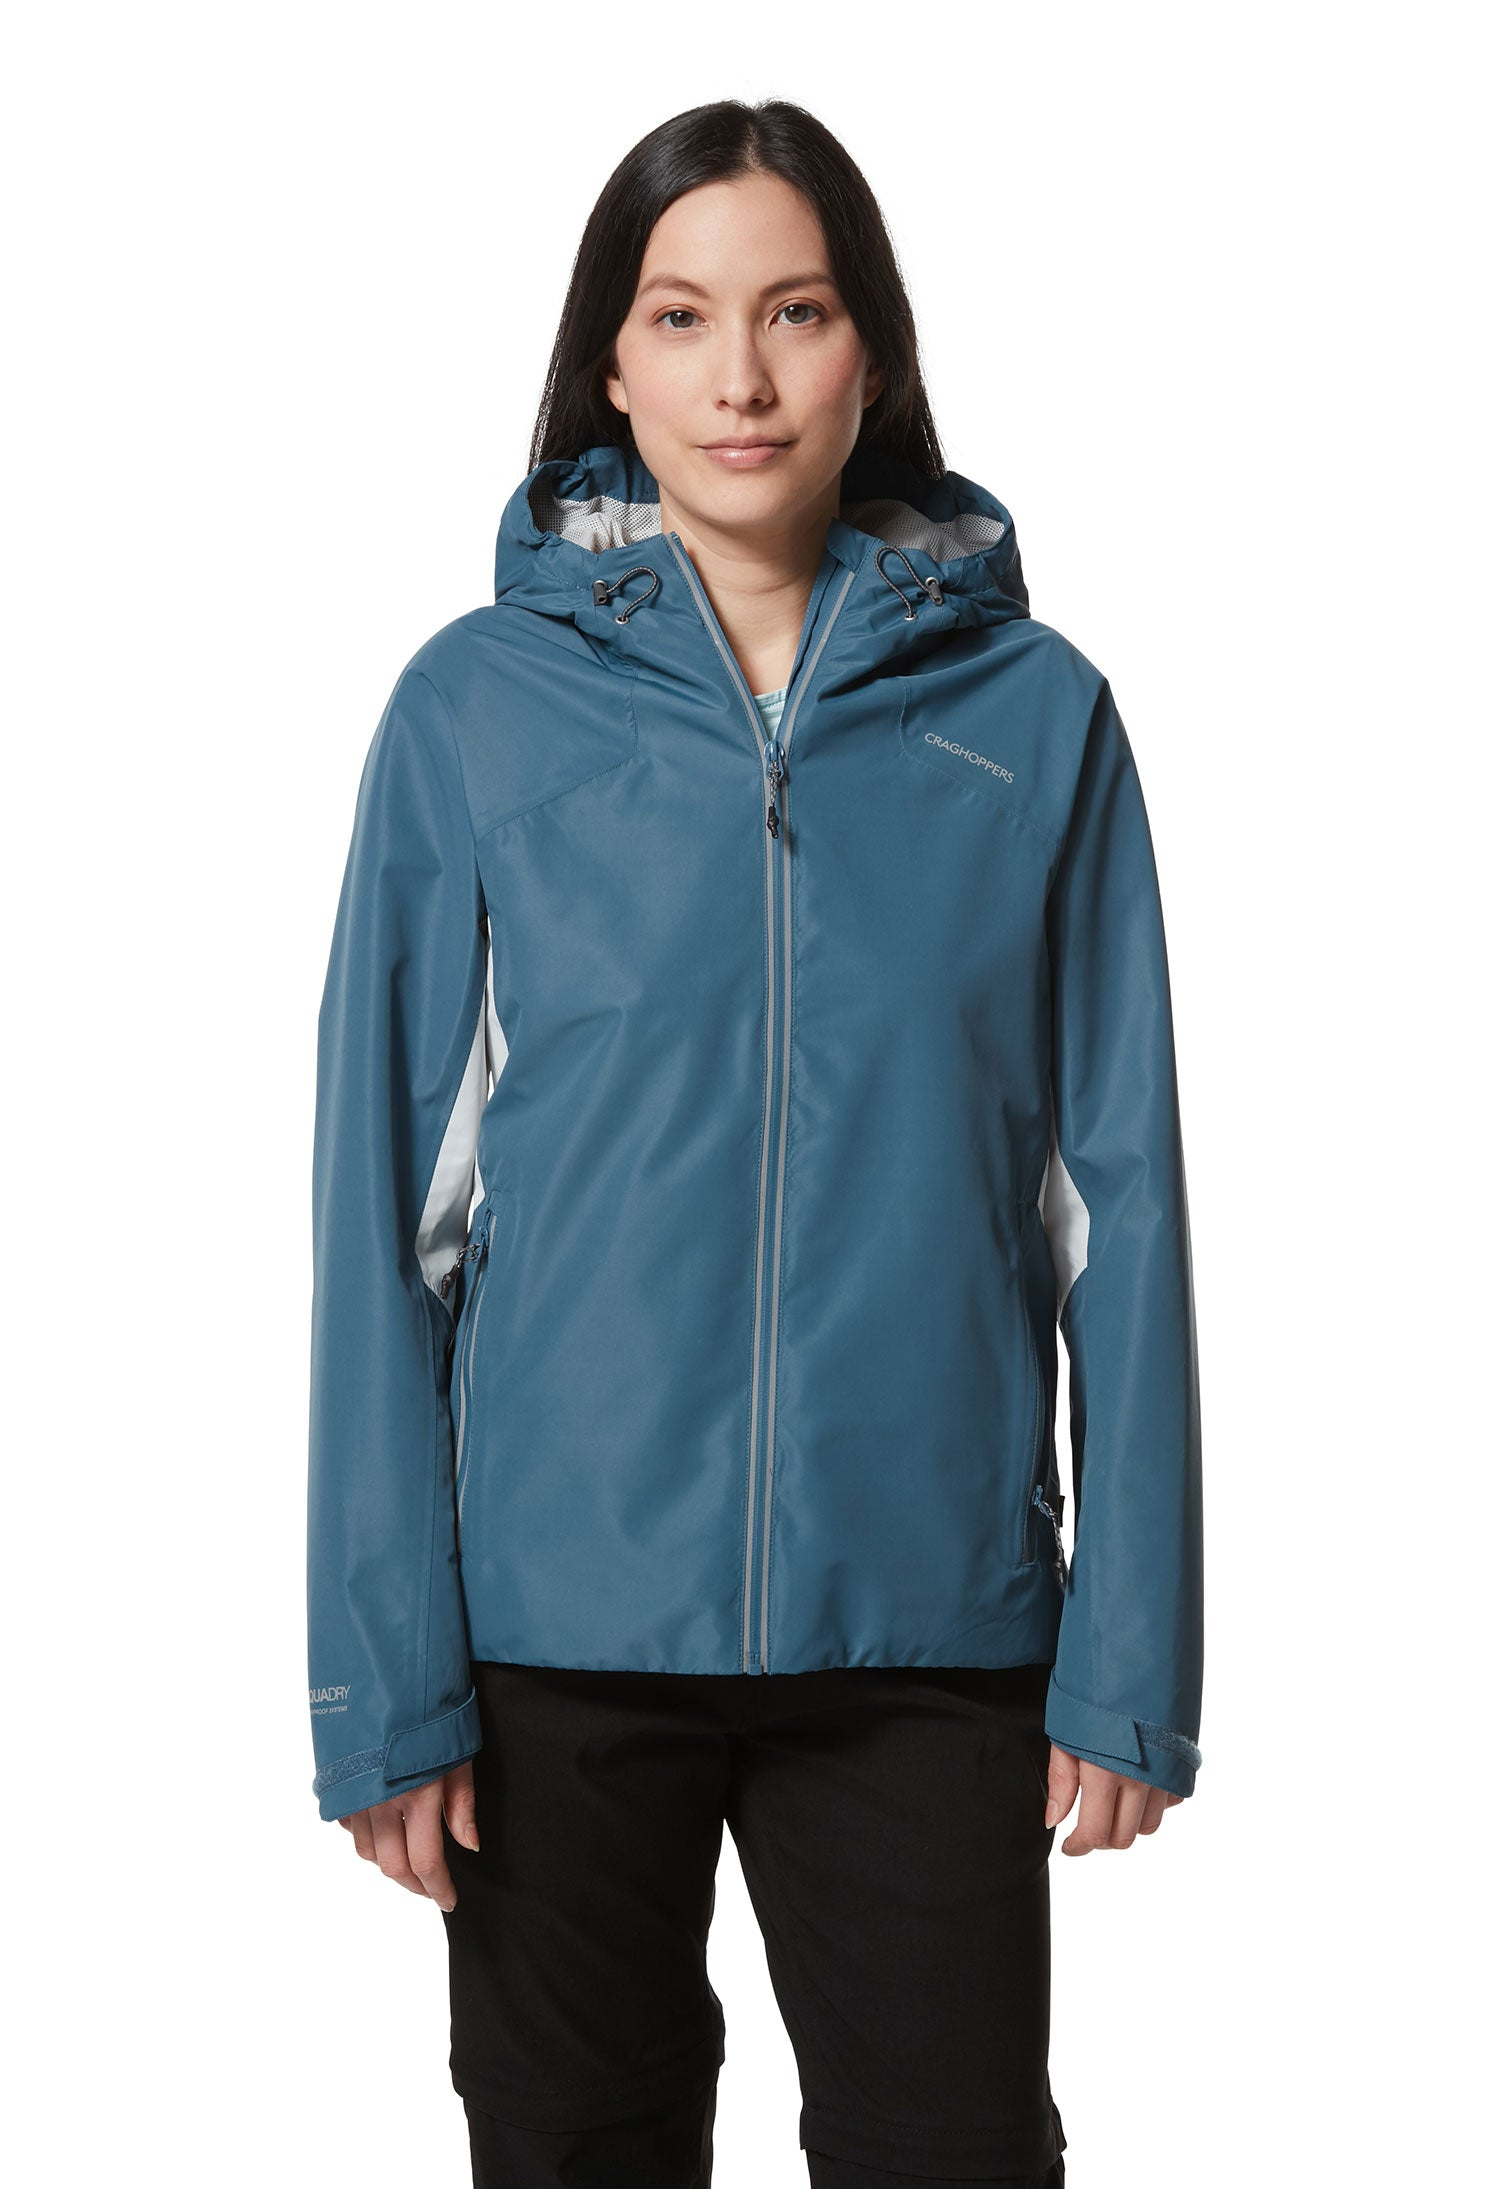 Teal Horizon Waterproof Women's Jacket by Craghoppers